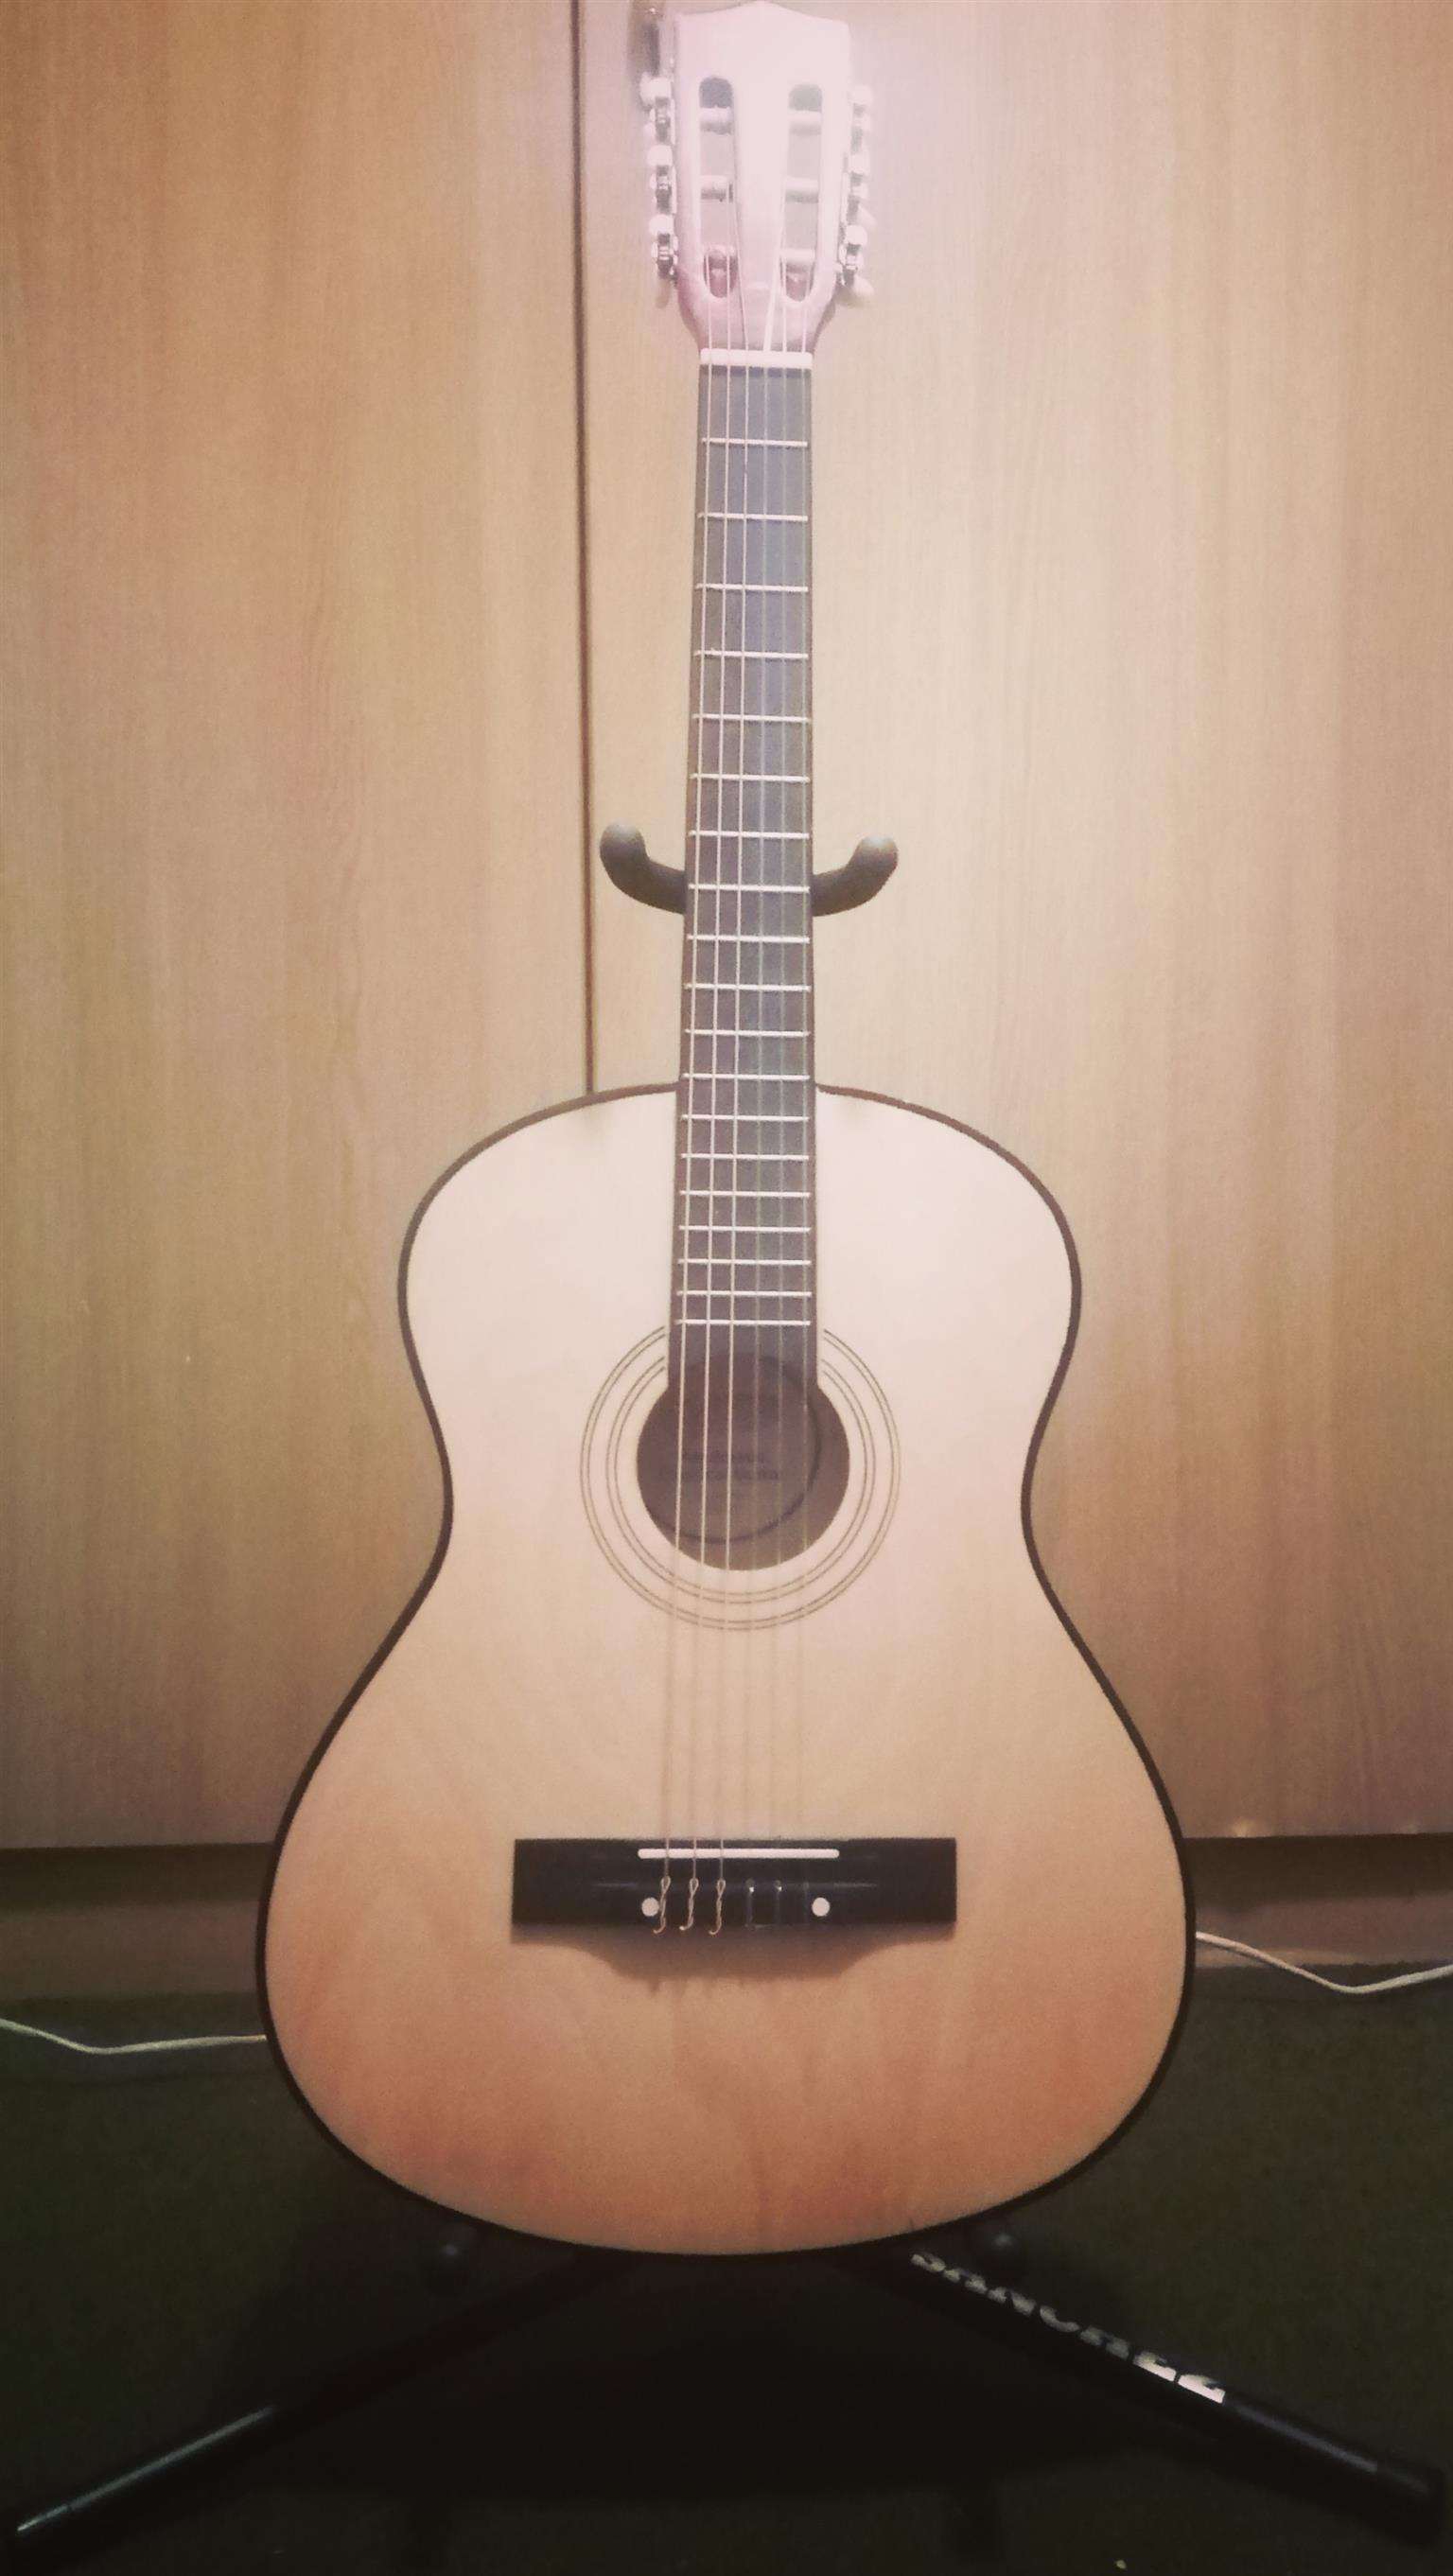 Wooden guitar with red sides